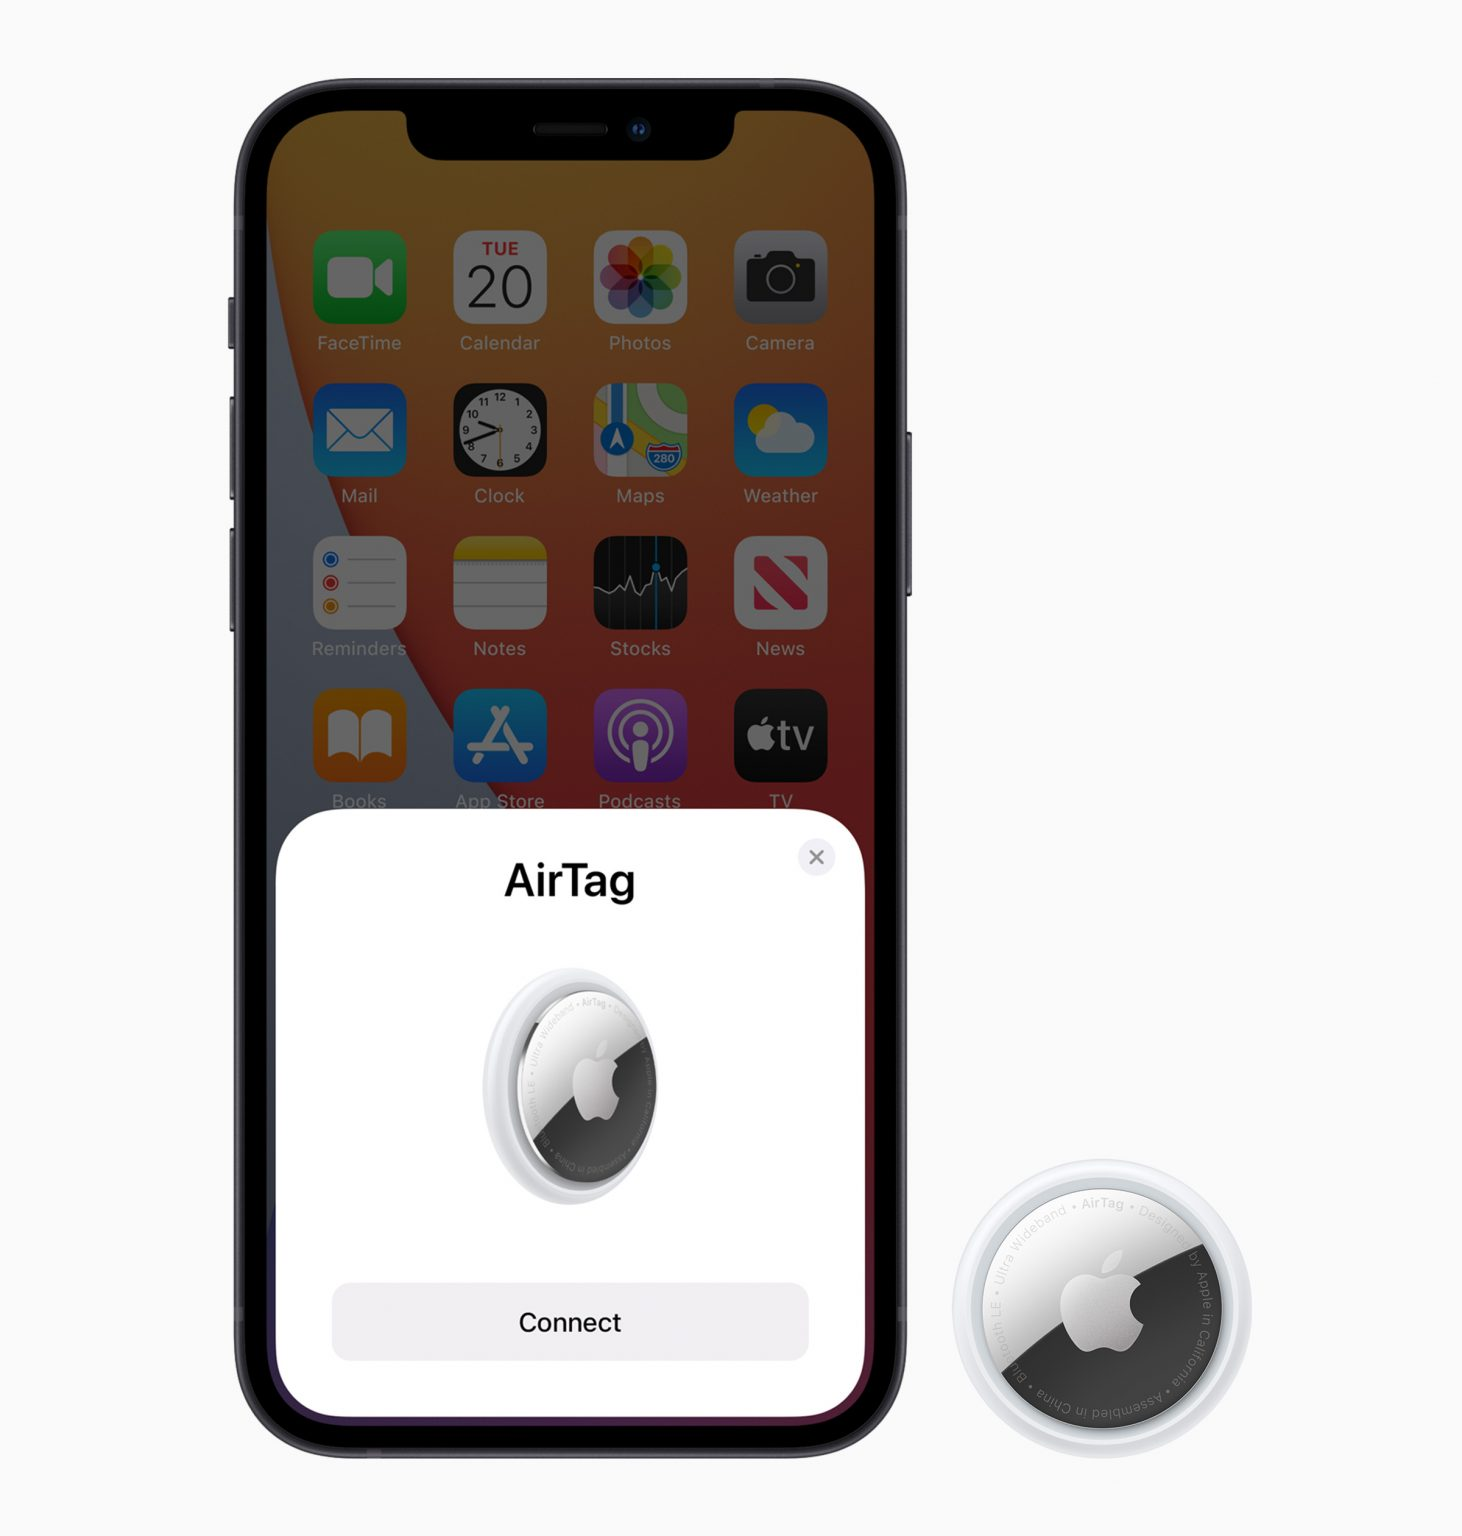 AirTag pairs easily with iPhone, much like AirPods.